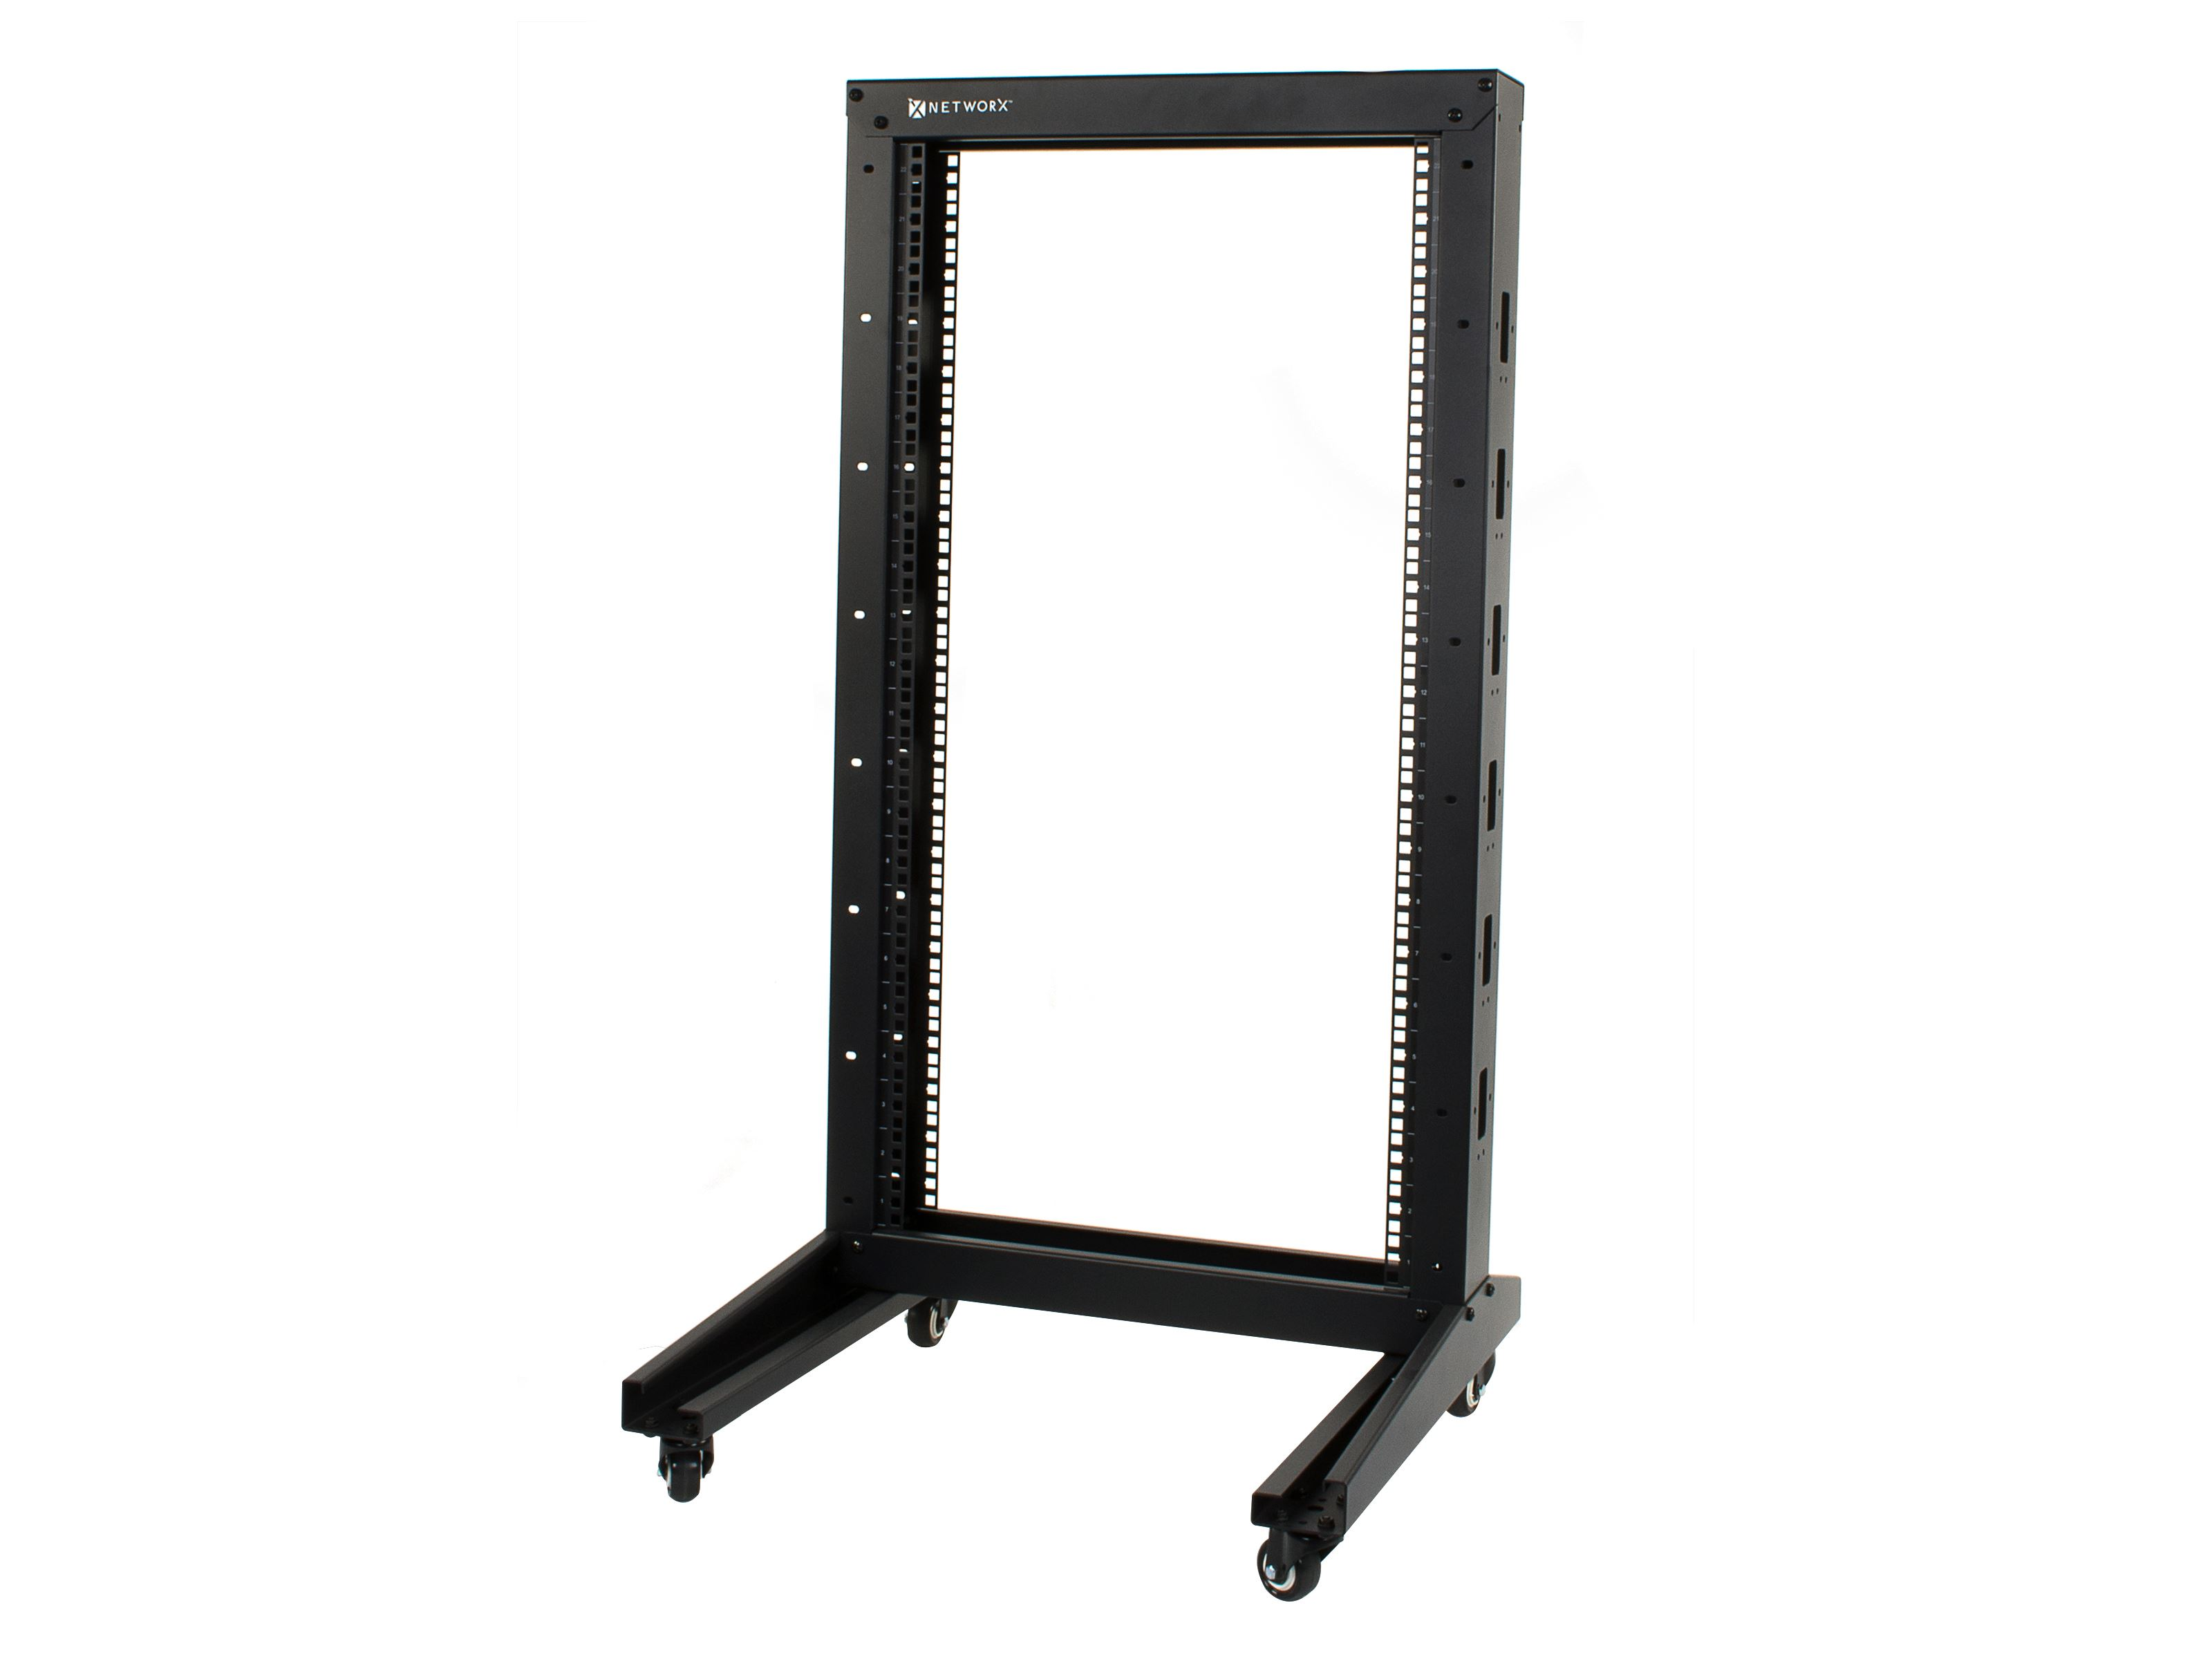 2 post free standing open frame network relay rack 22u for Free standing